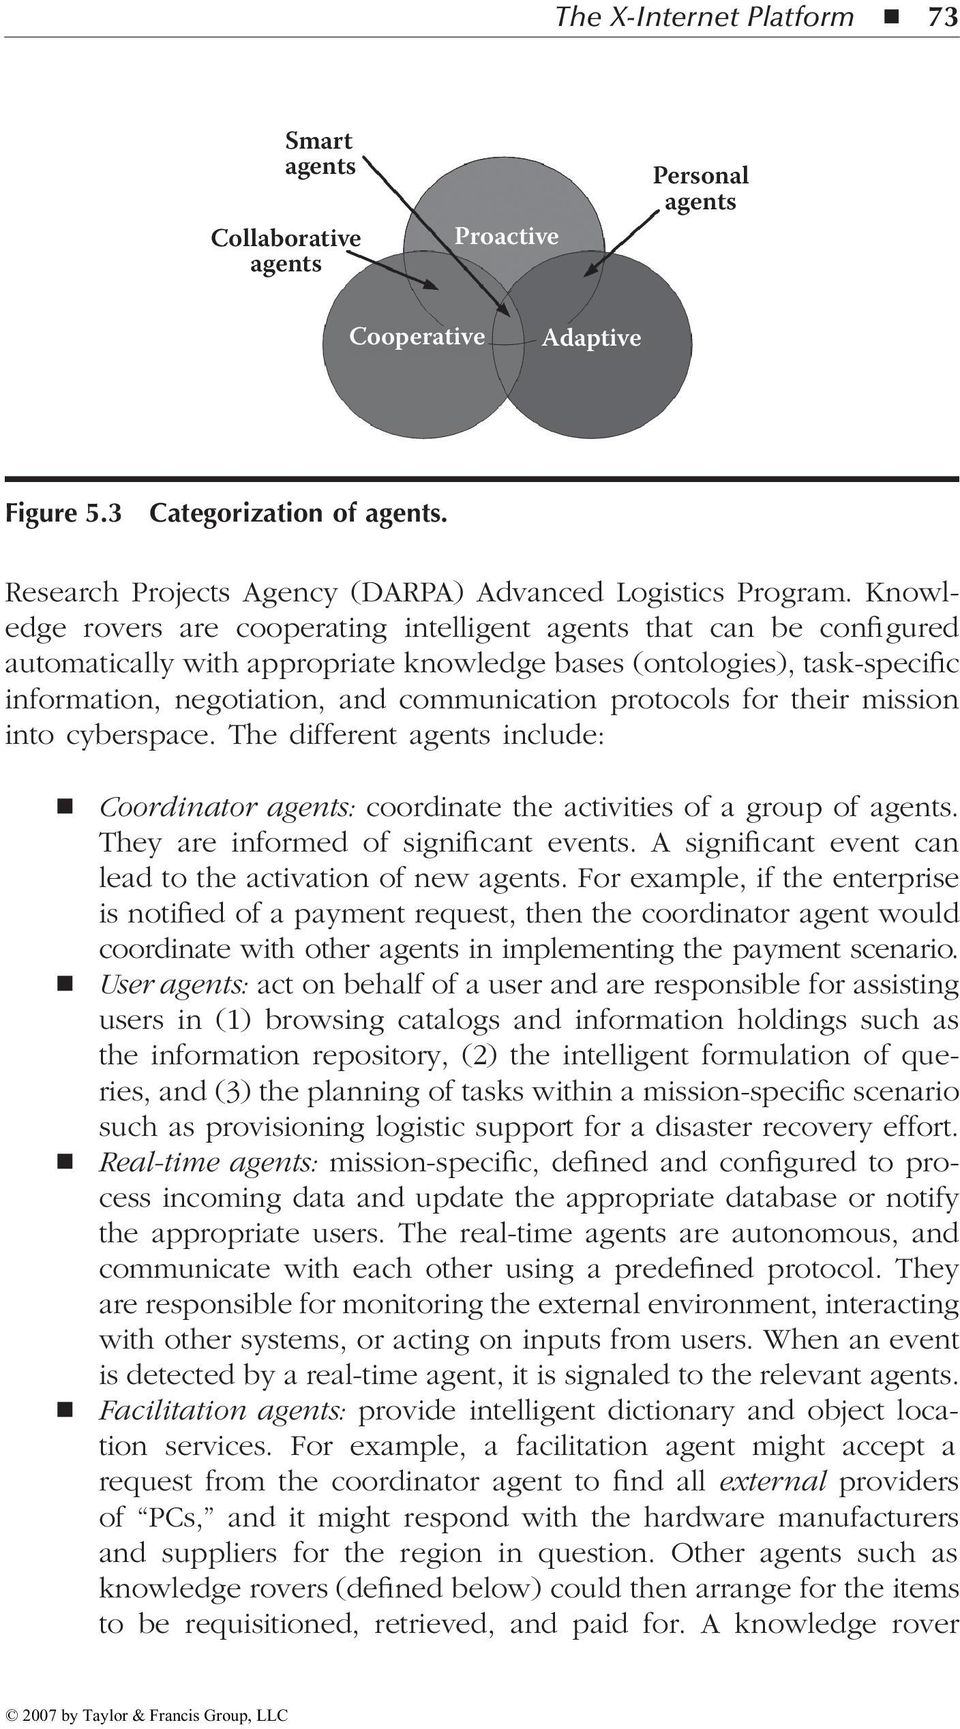 Knowledge rovers are cooperating intelligent agents that can be configured automatically with appropriate knowledge bases (ontologies), task-specific information, negotiation, and communication